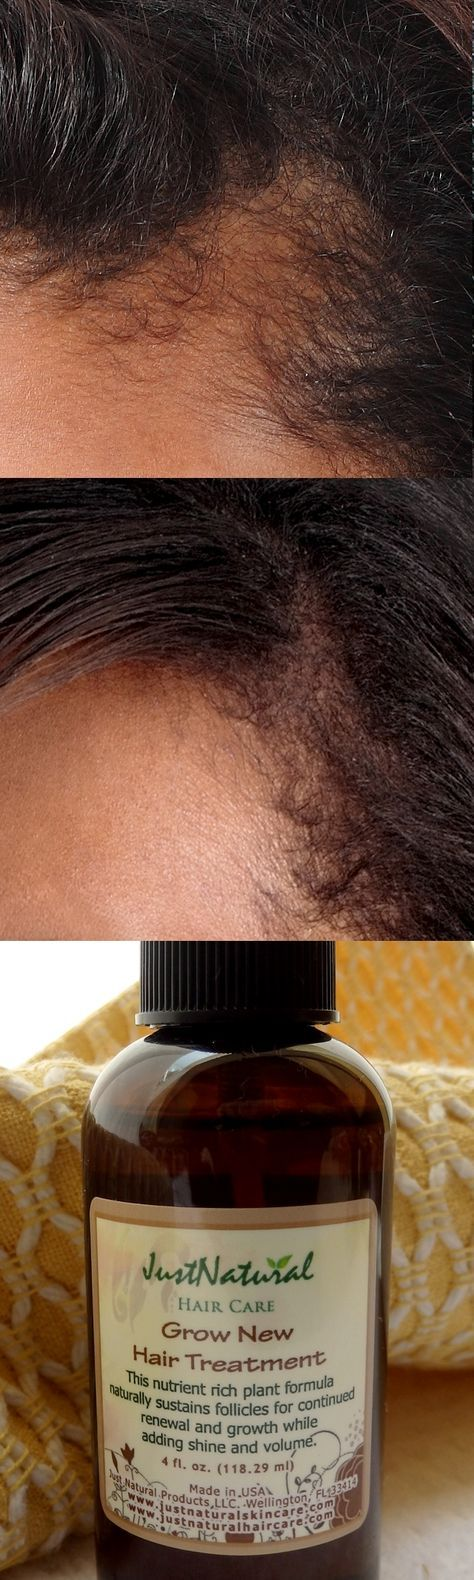 Click here for one simple trick to grow your hair faster